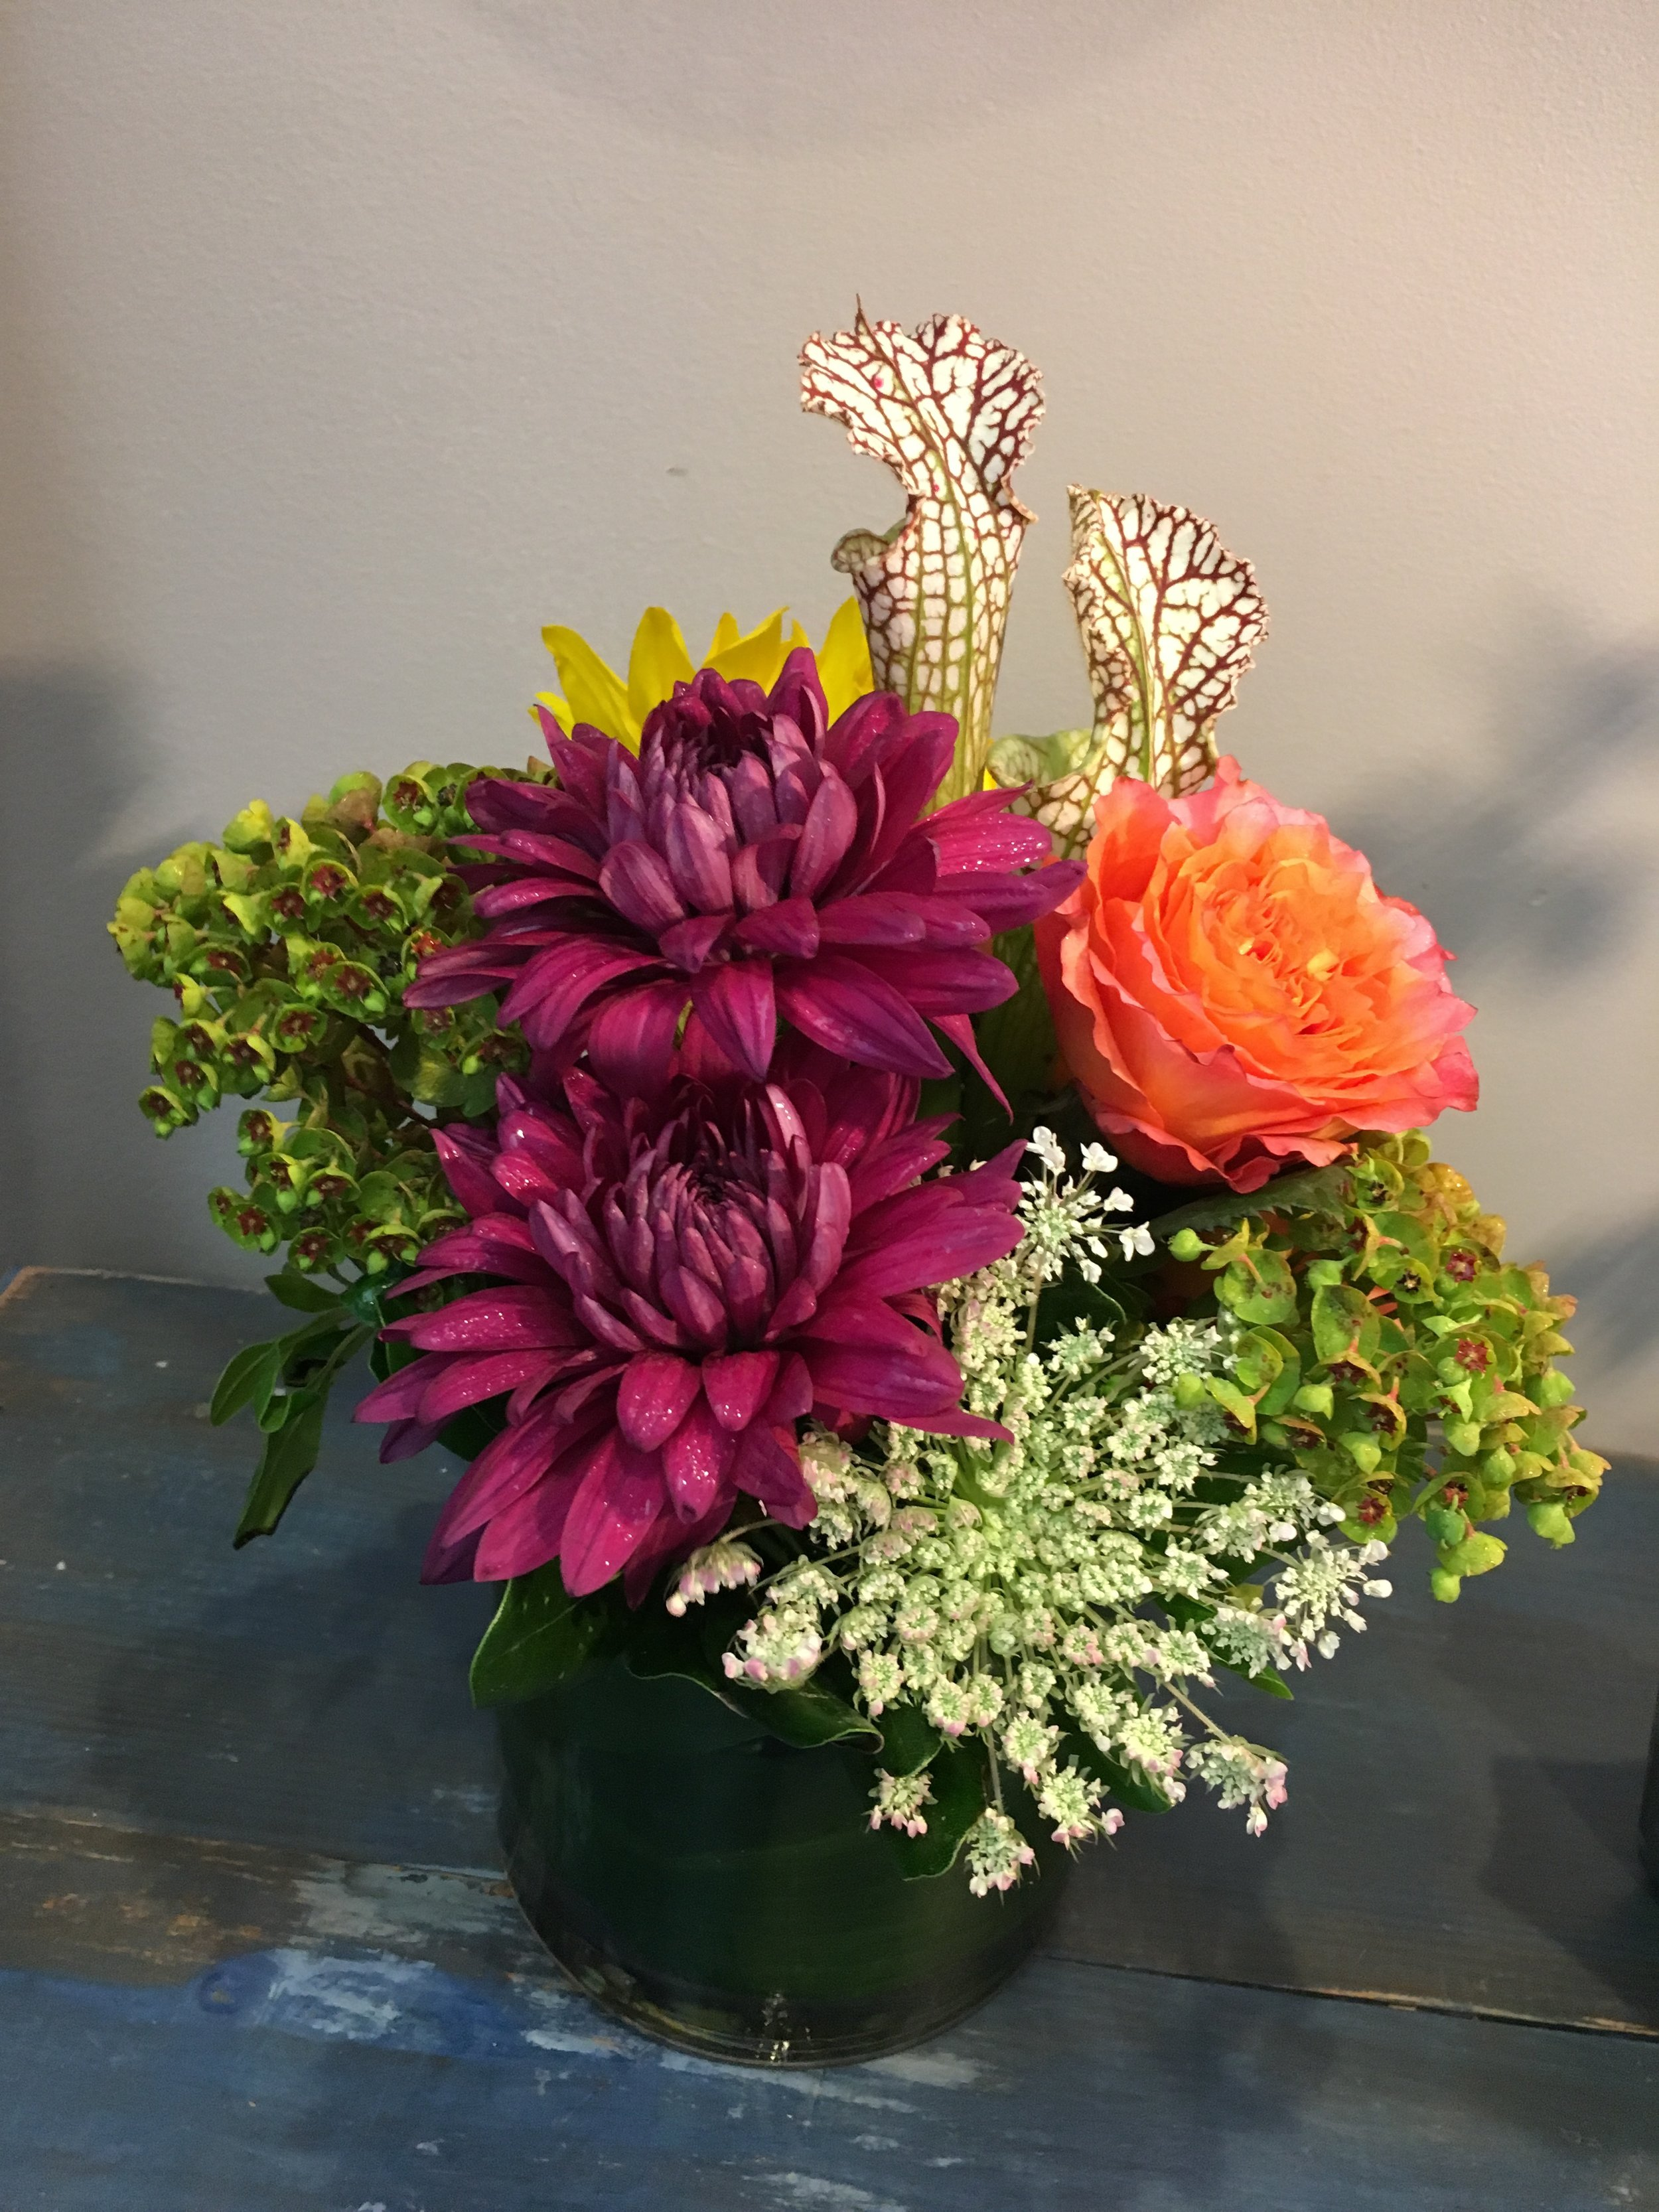 Standard - Seasonal mix of florals in a 4 or 5 inch vase.$30-45*Pictured arrangement $30